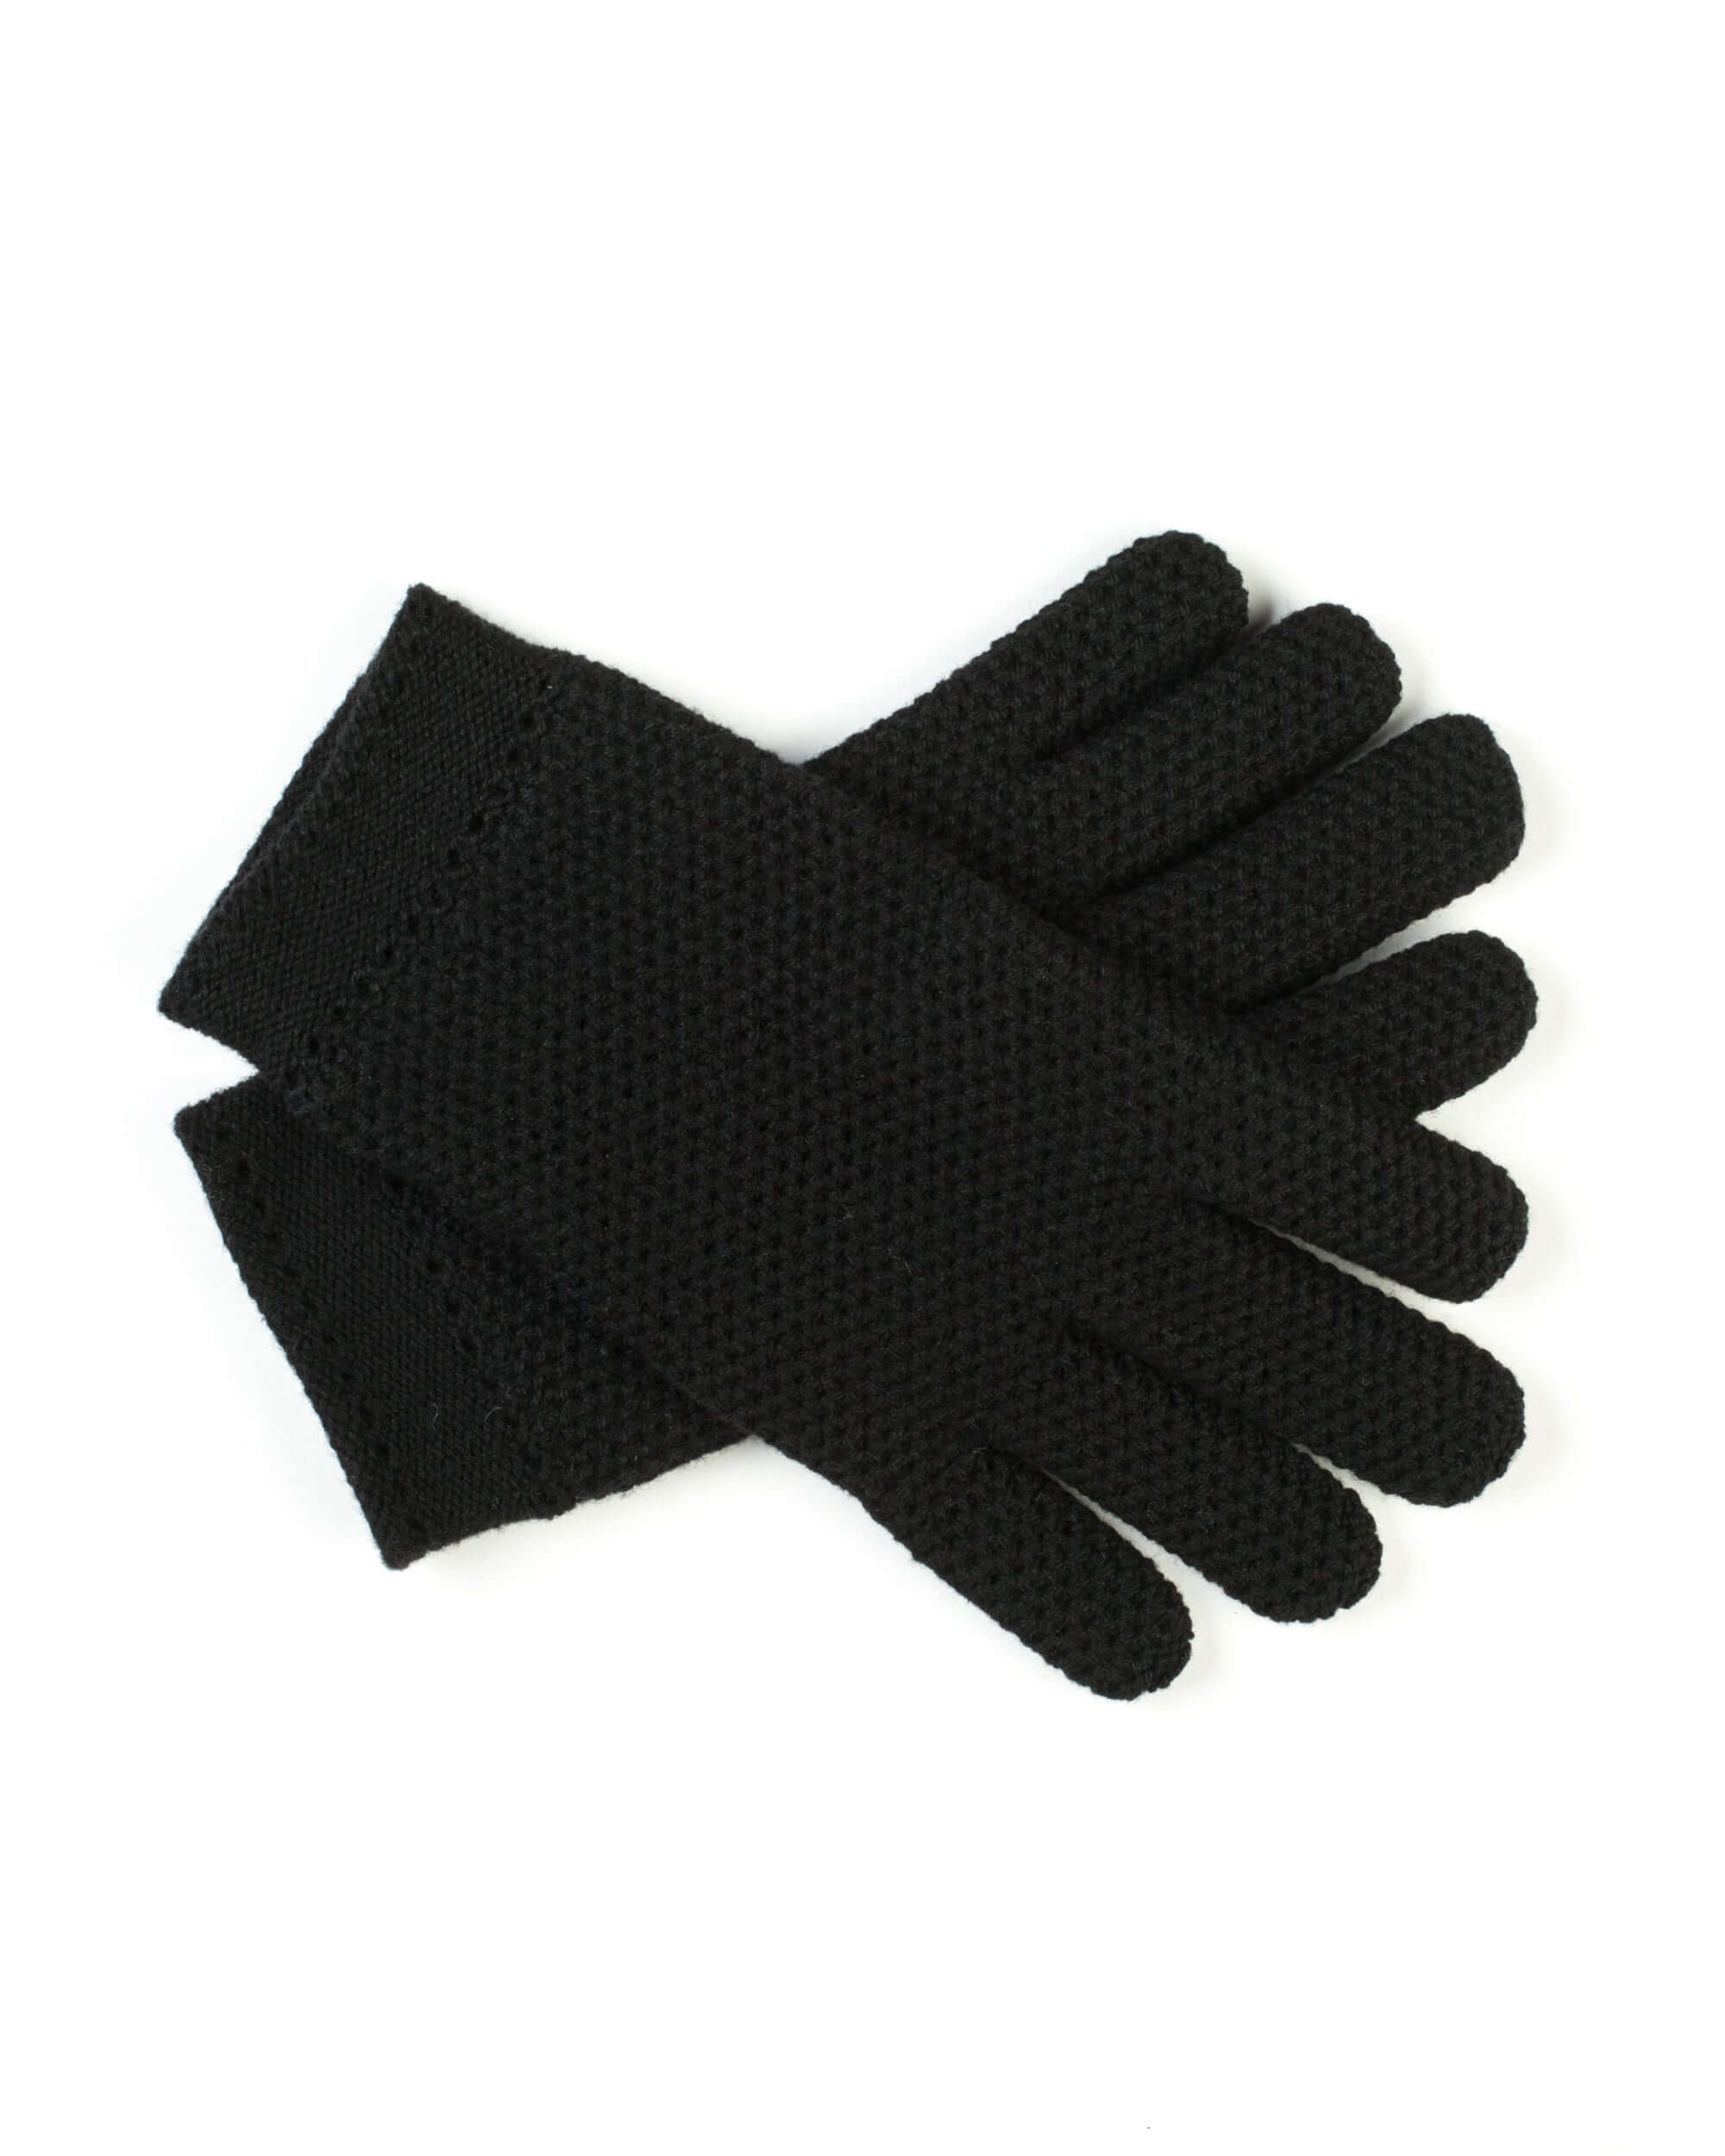 Black honeycomb-weave cashmere gloves